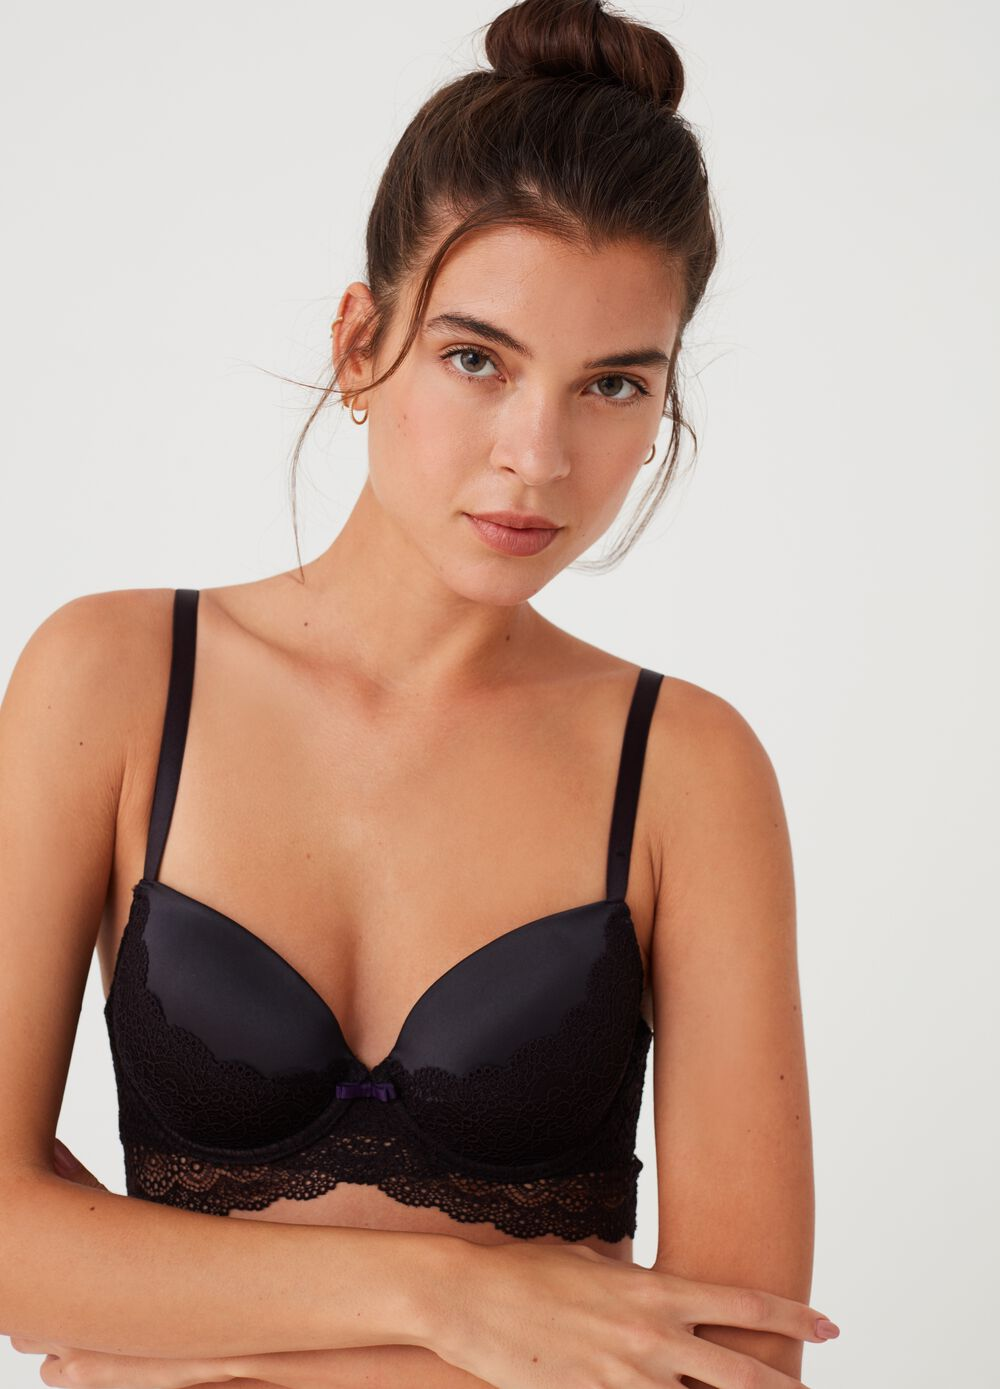 Mila Push up bra - Wow effect